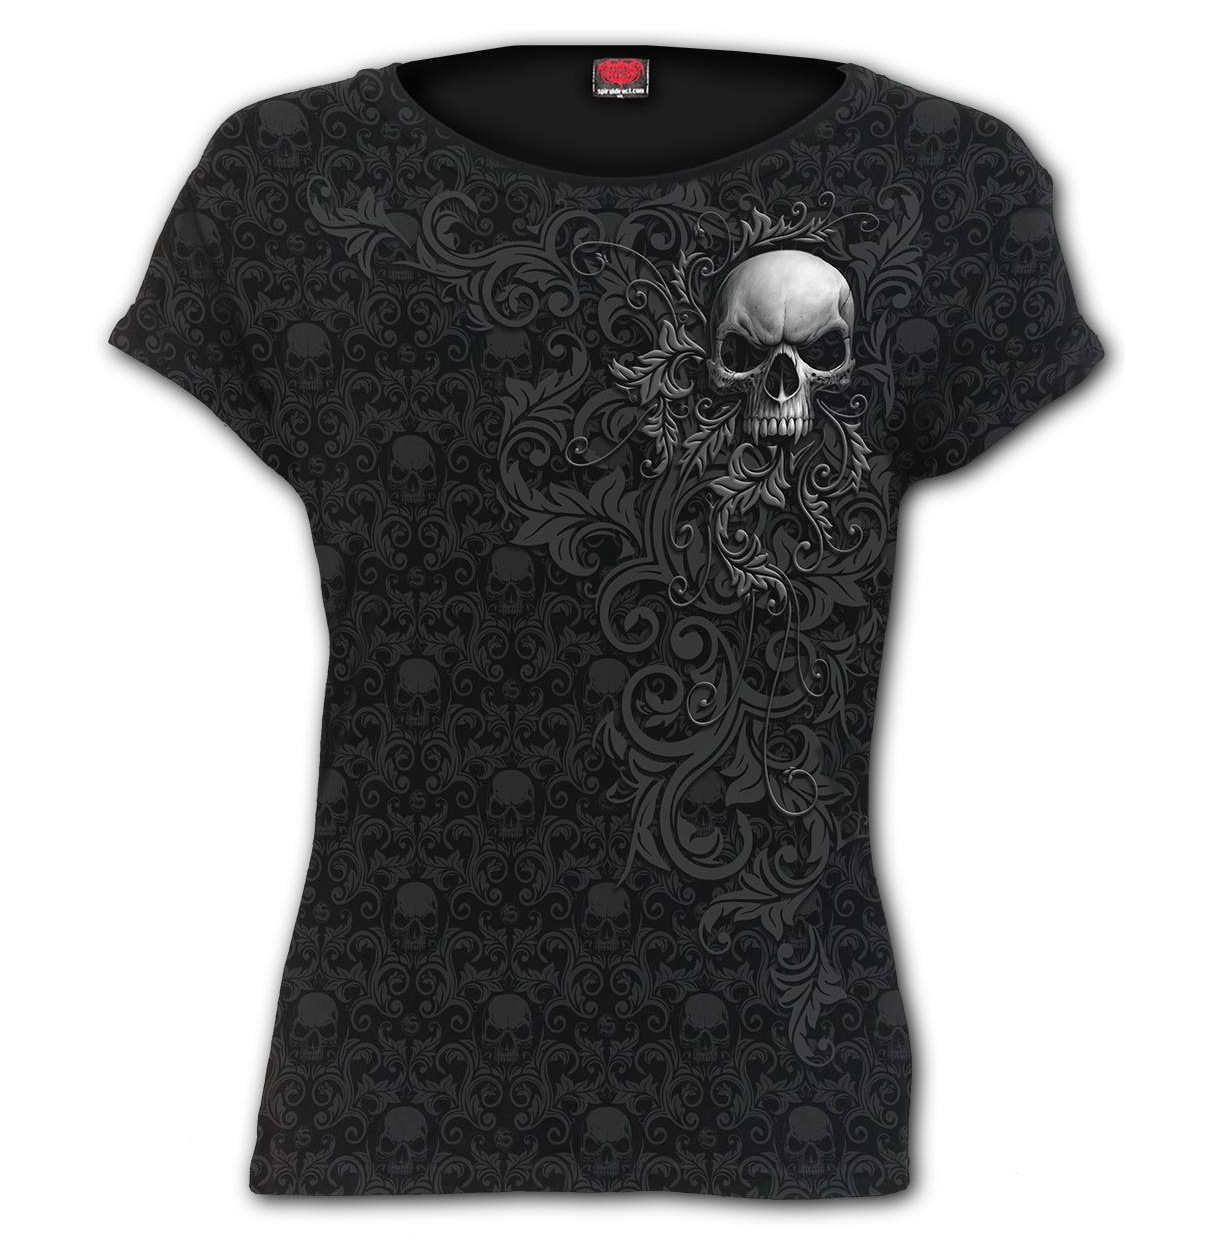 Spiral-Direct-Ladies-Black-Gothic-SKULL-SCROLL-Impression-T-Shirt-Top-All-Sizes thumbnail 5